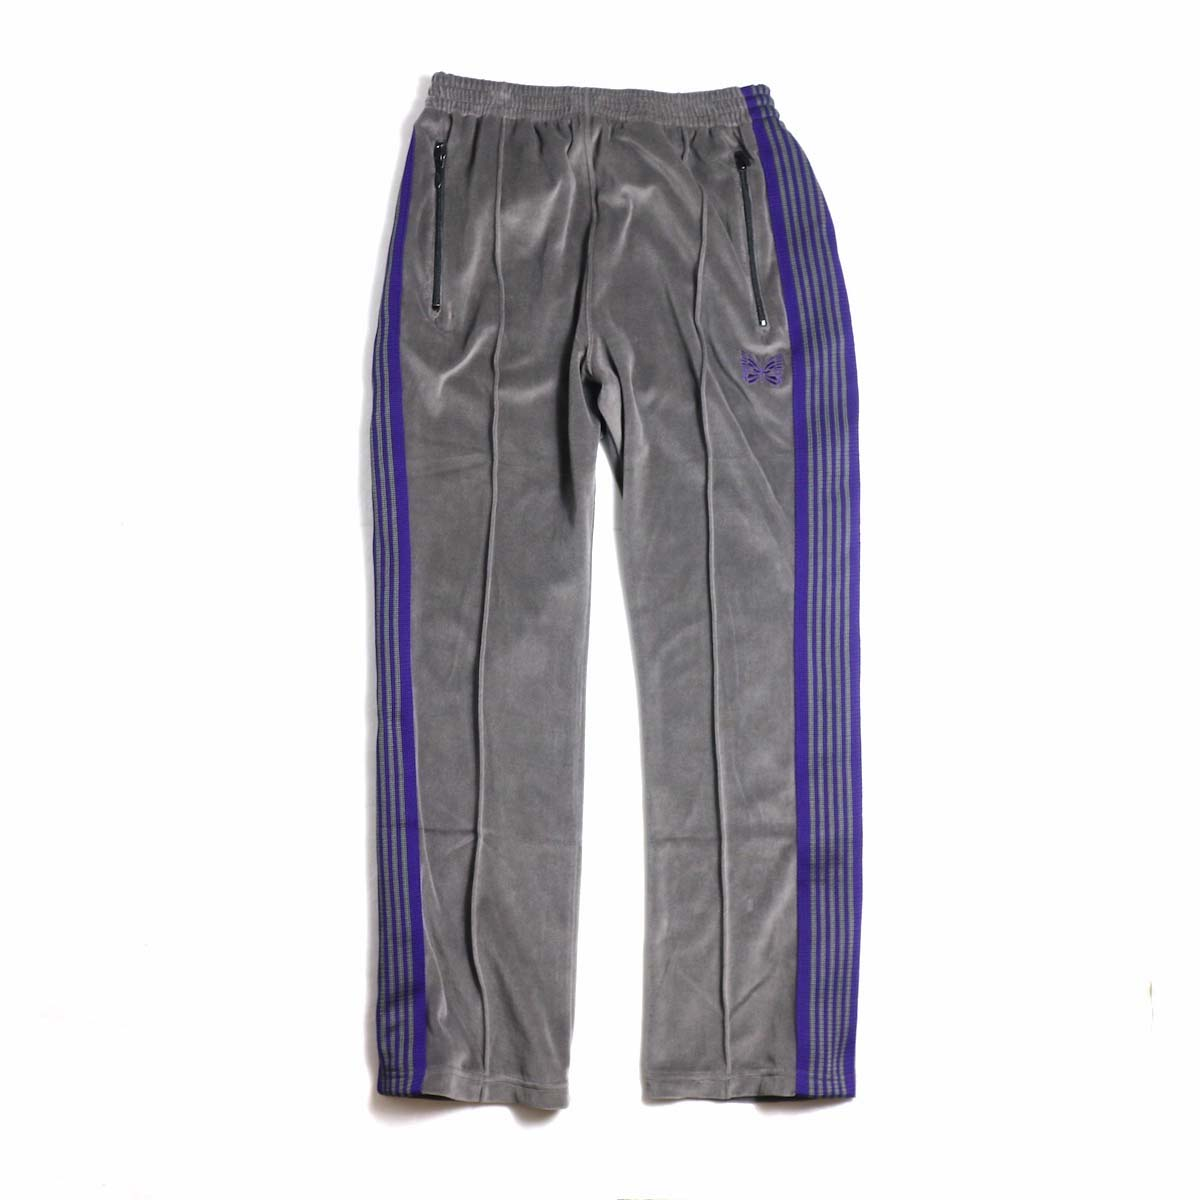 Needles / Narrow Track Pant - C/Pe Velour (Gray)